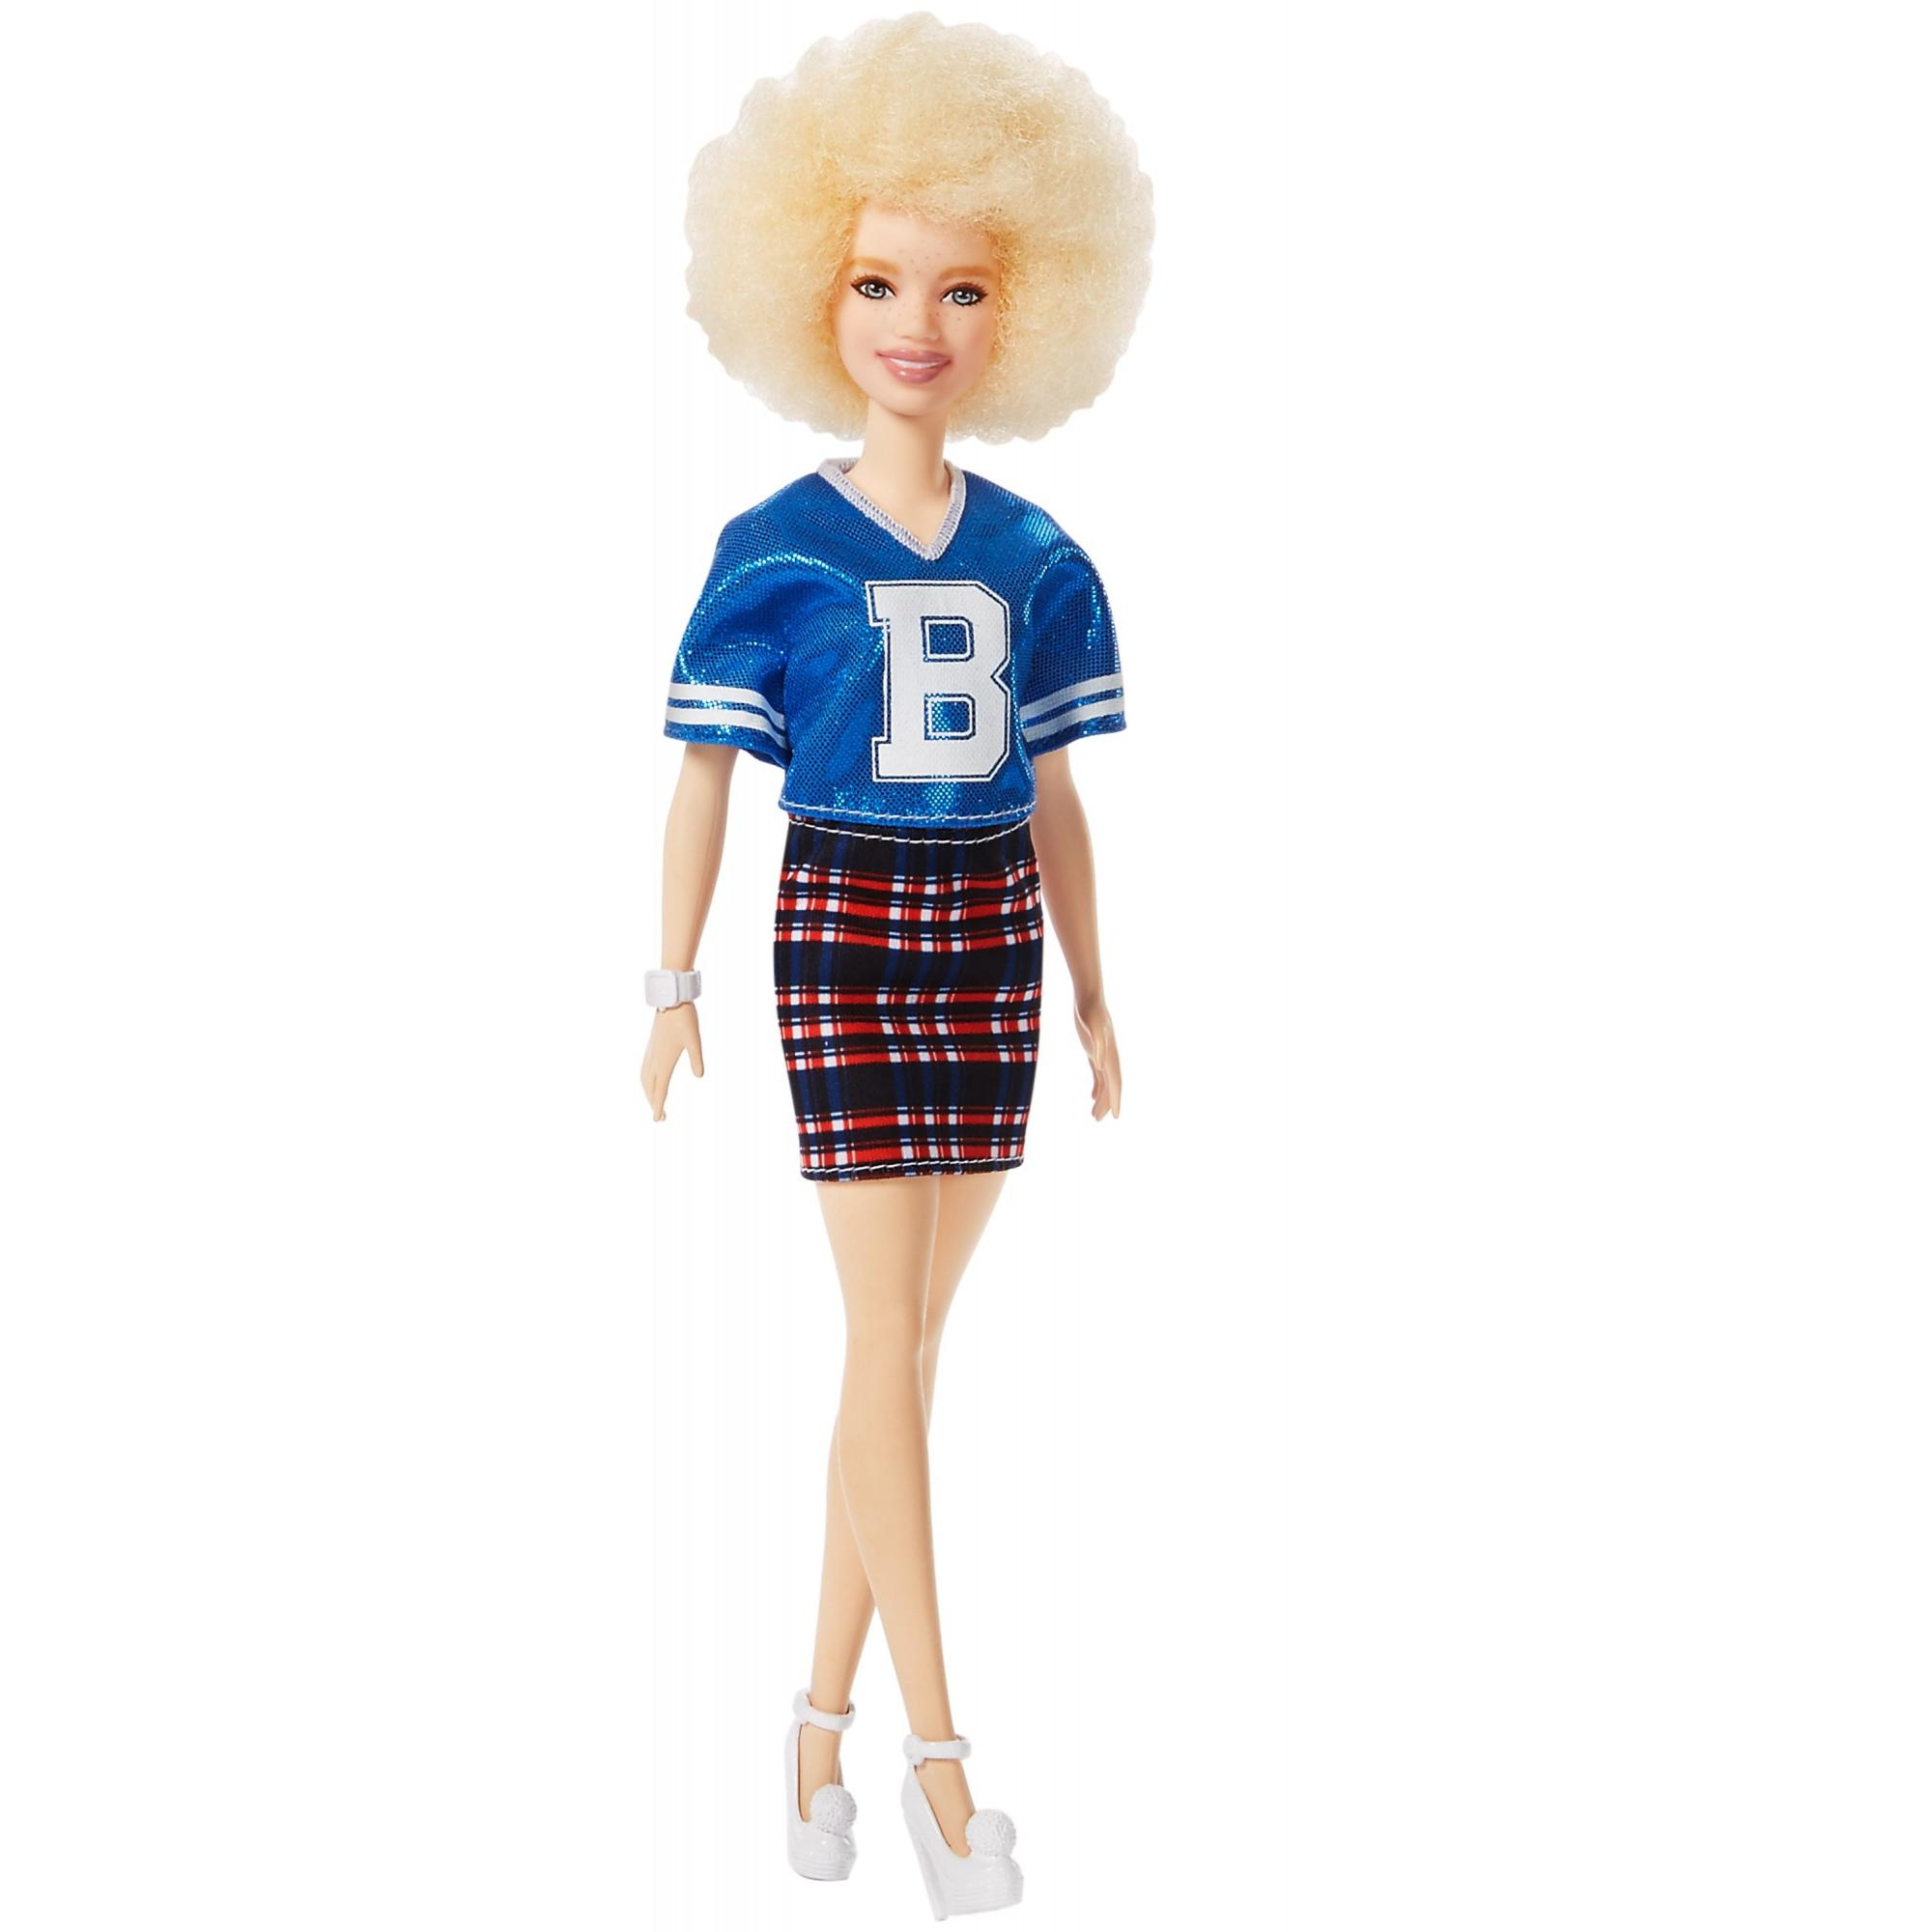 Barbie Fashionistas Doll 91, B Jersey Play Skirt by Mattel